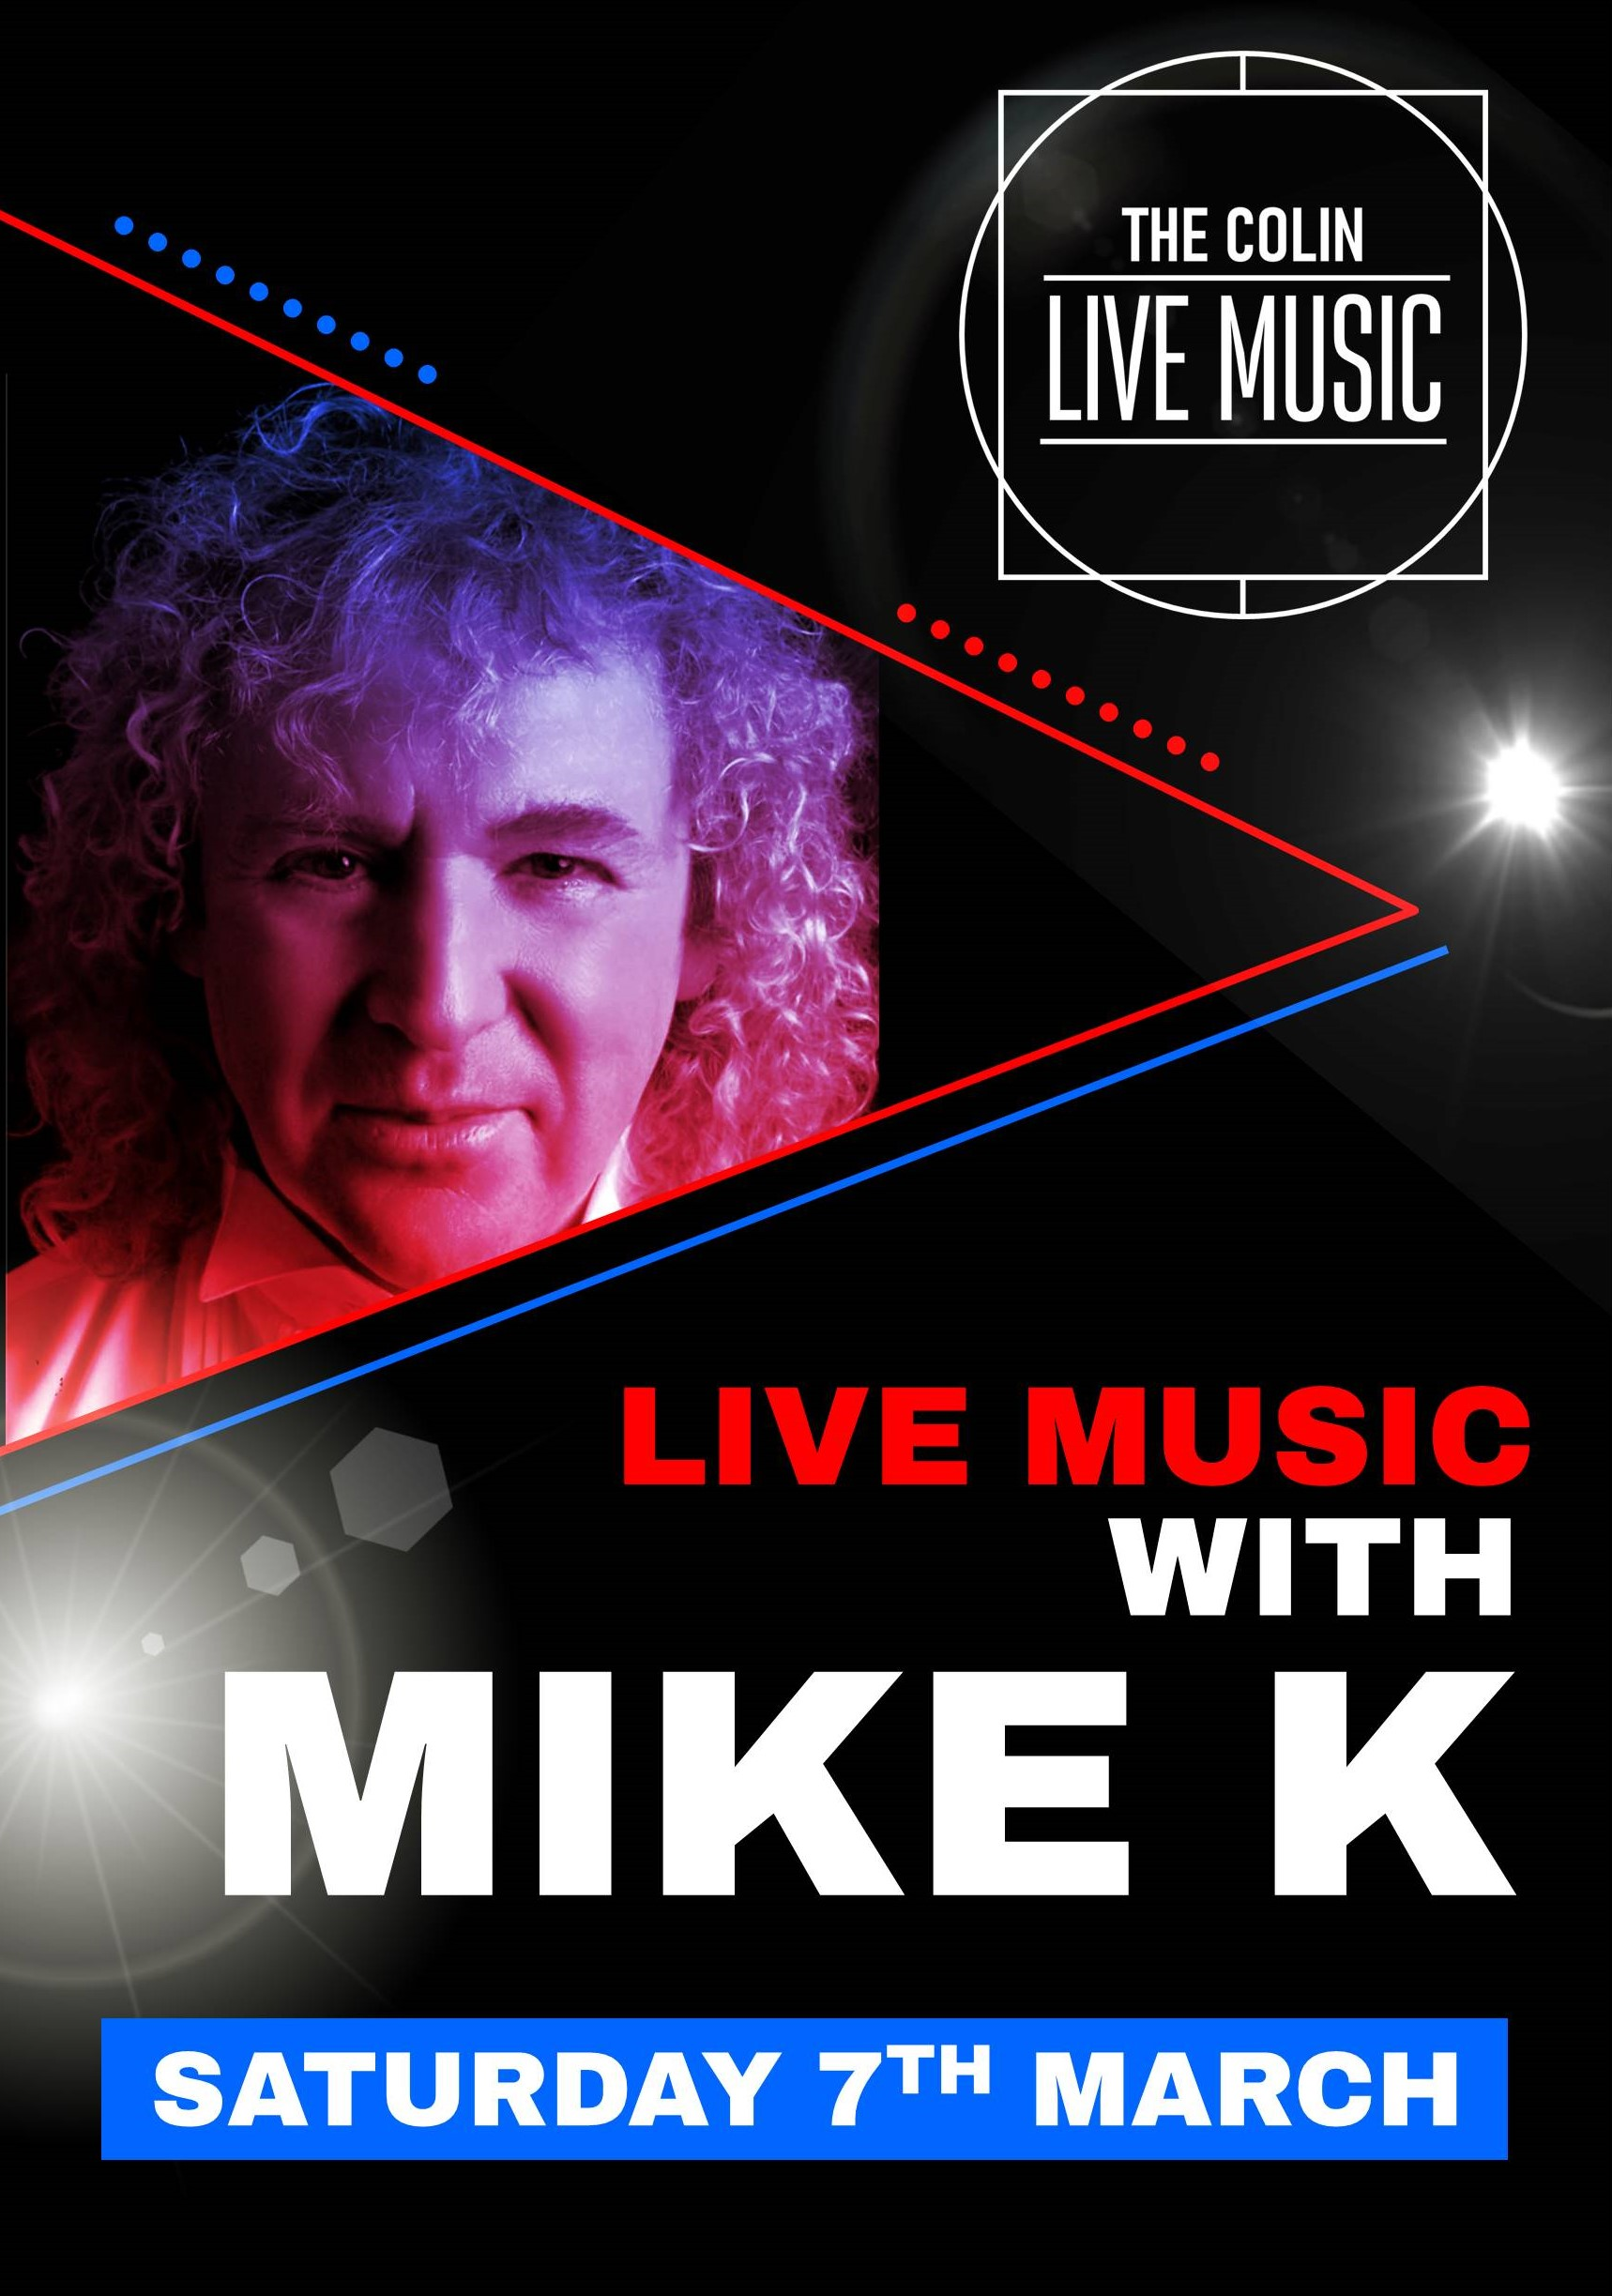 Mike K